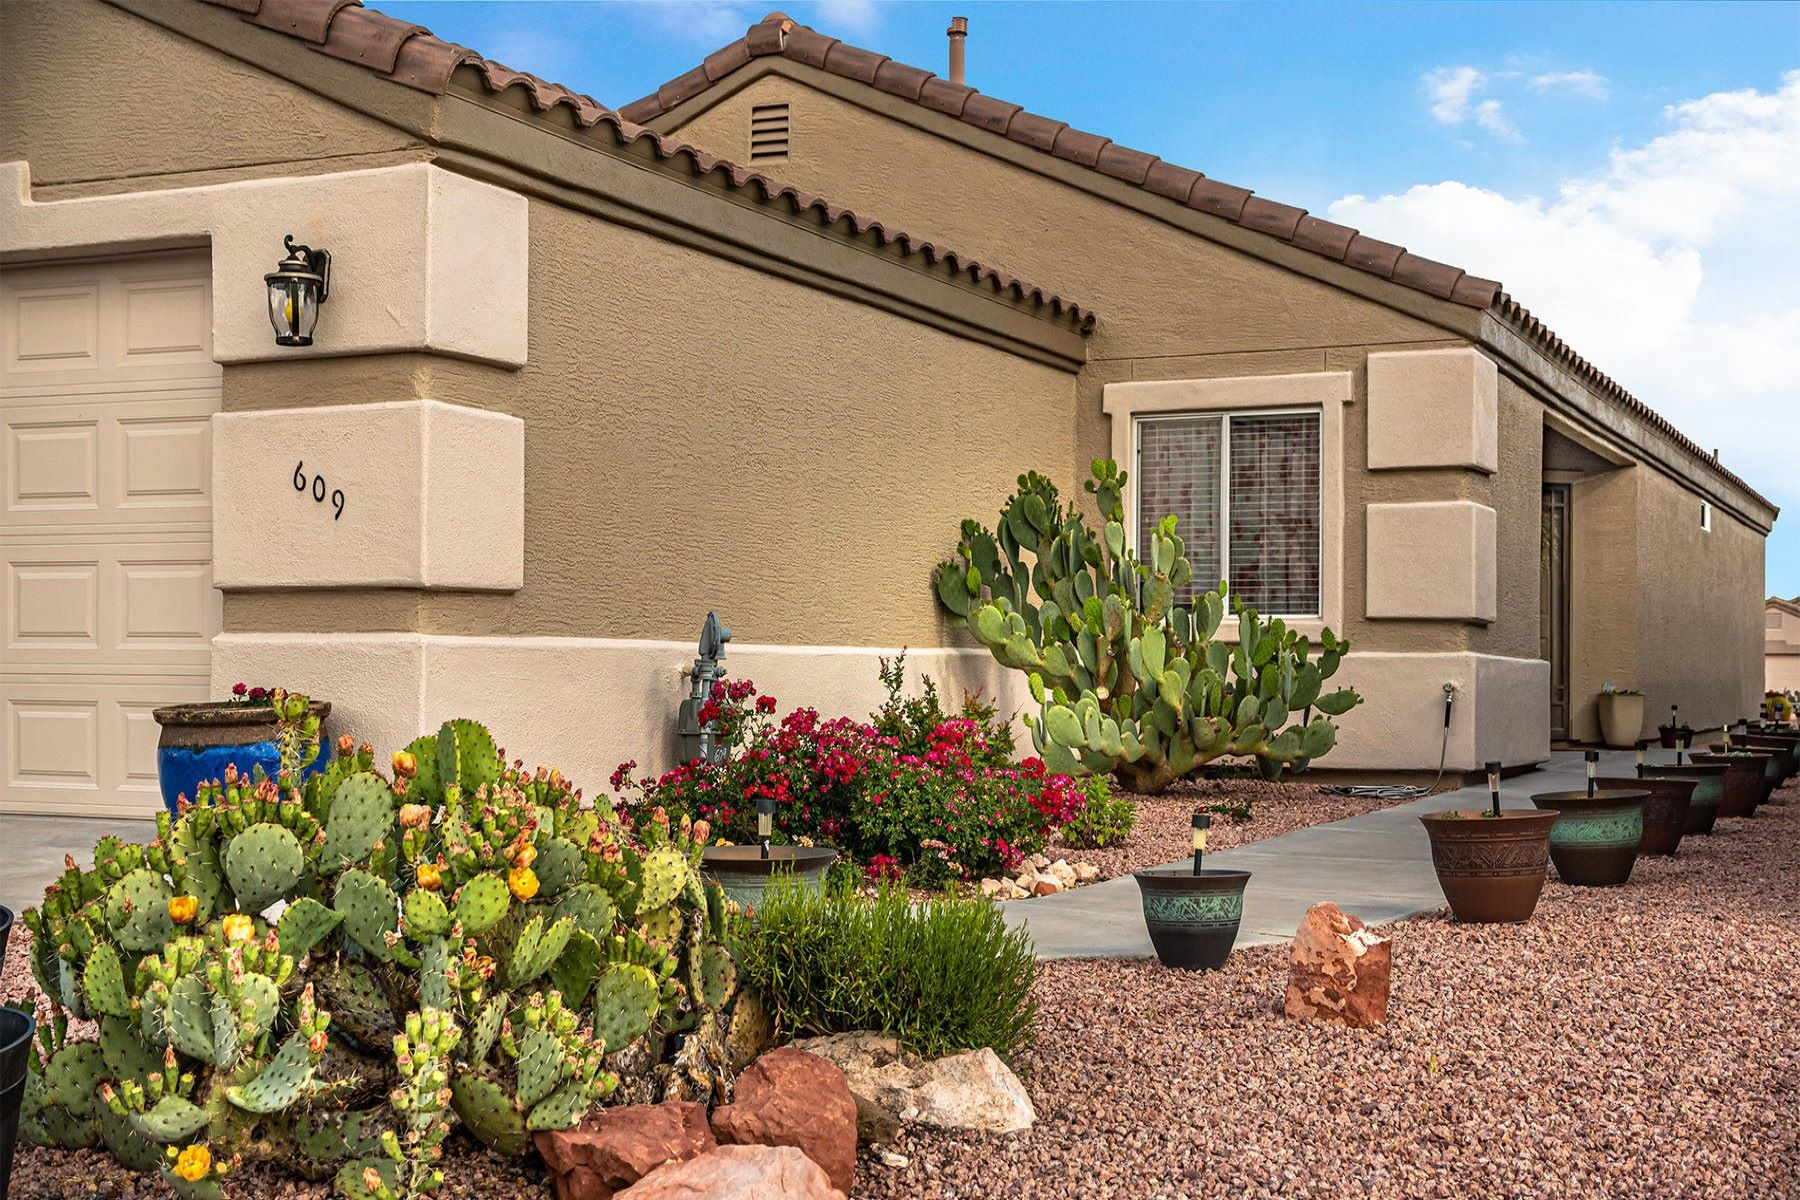 Single Family Homes for Sale at Single Level Family Home 609 S Amante Drive Cornville, Arizona 86325 United States